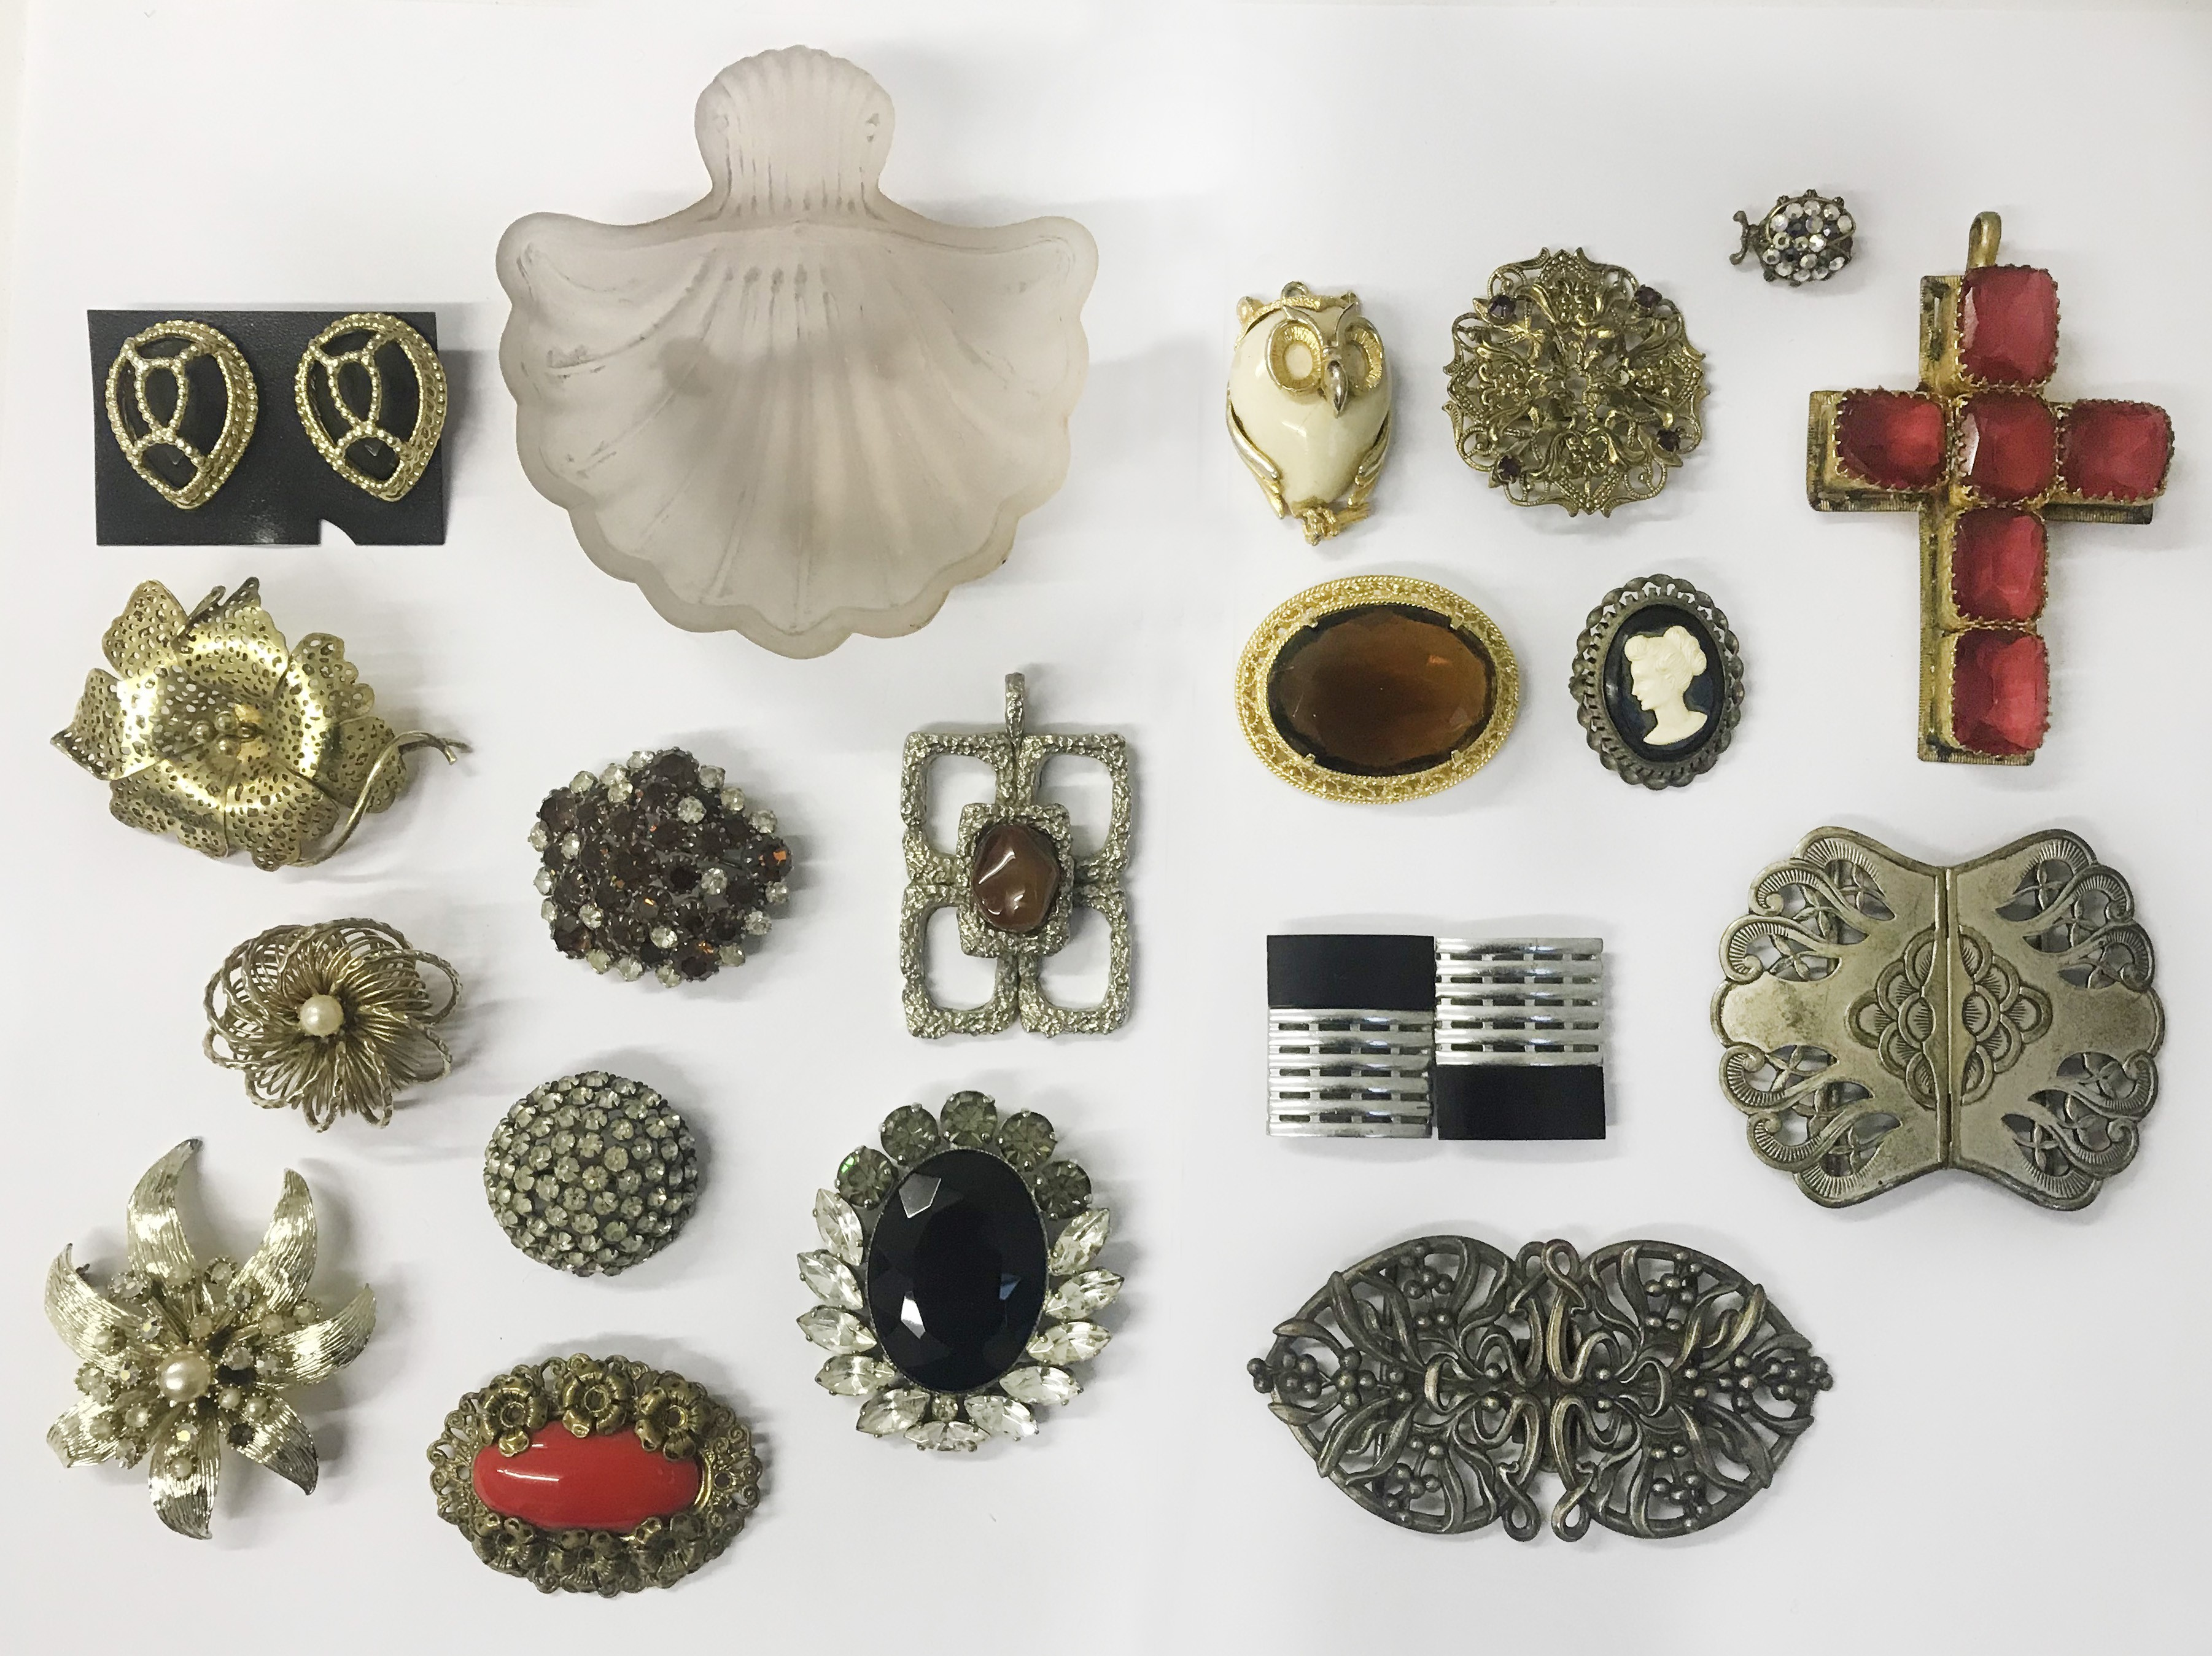 Lot 36 - Small collection of Costume Jewelery